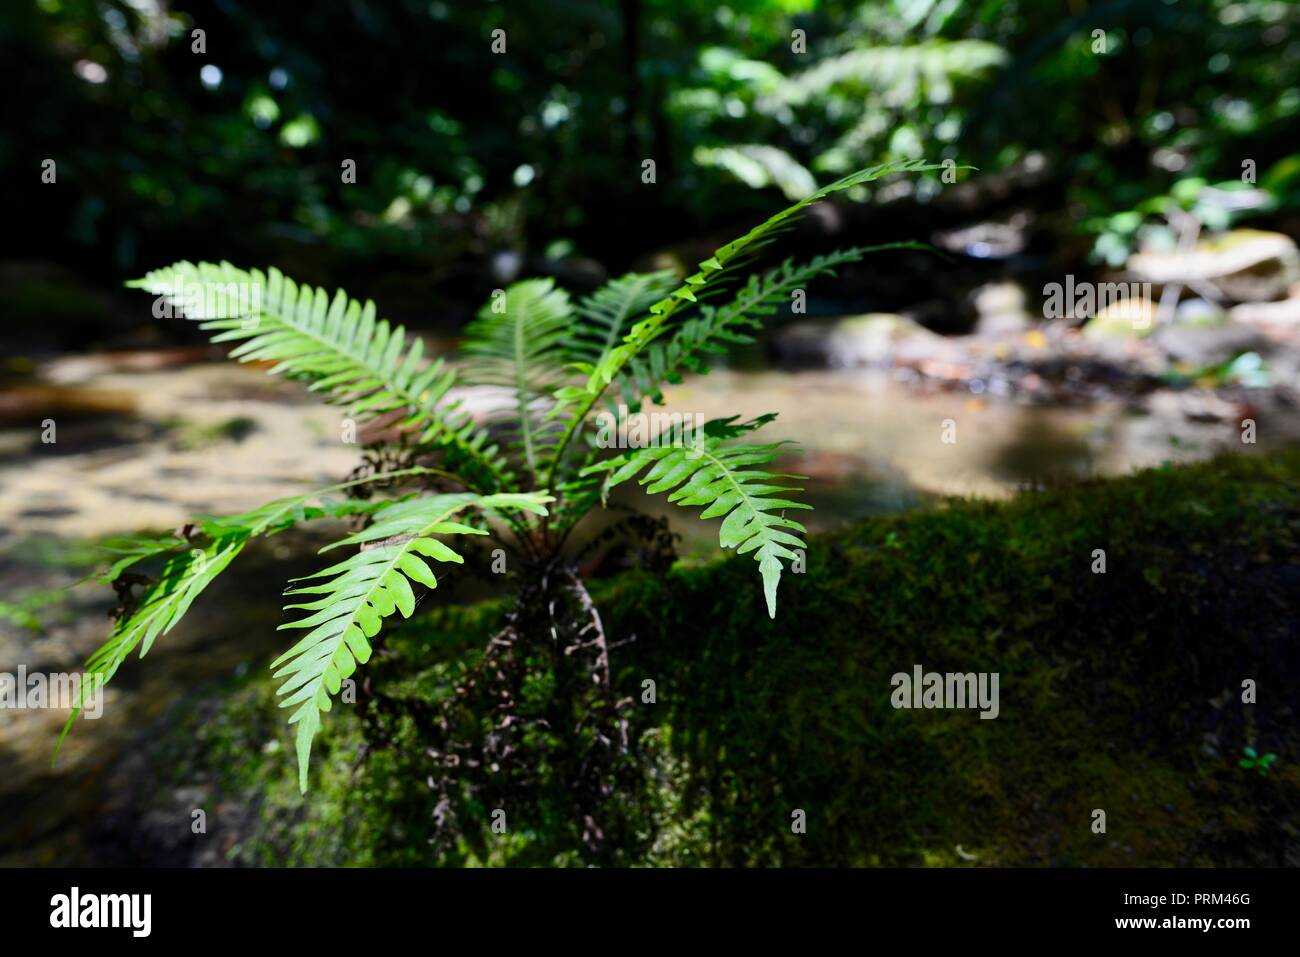 A Fern growing on a rock near a river, Gorrell track, Misty Mountains, Queensland, Australia Stock Photo